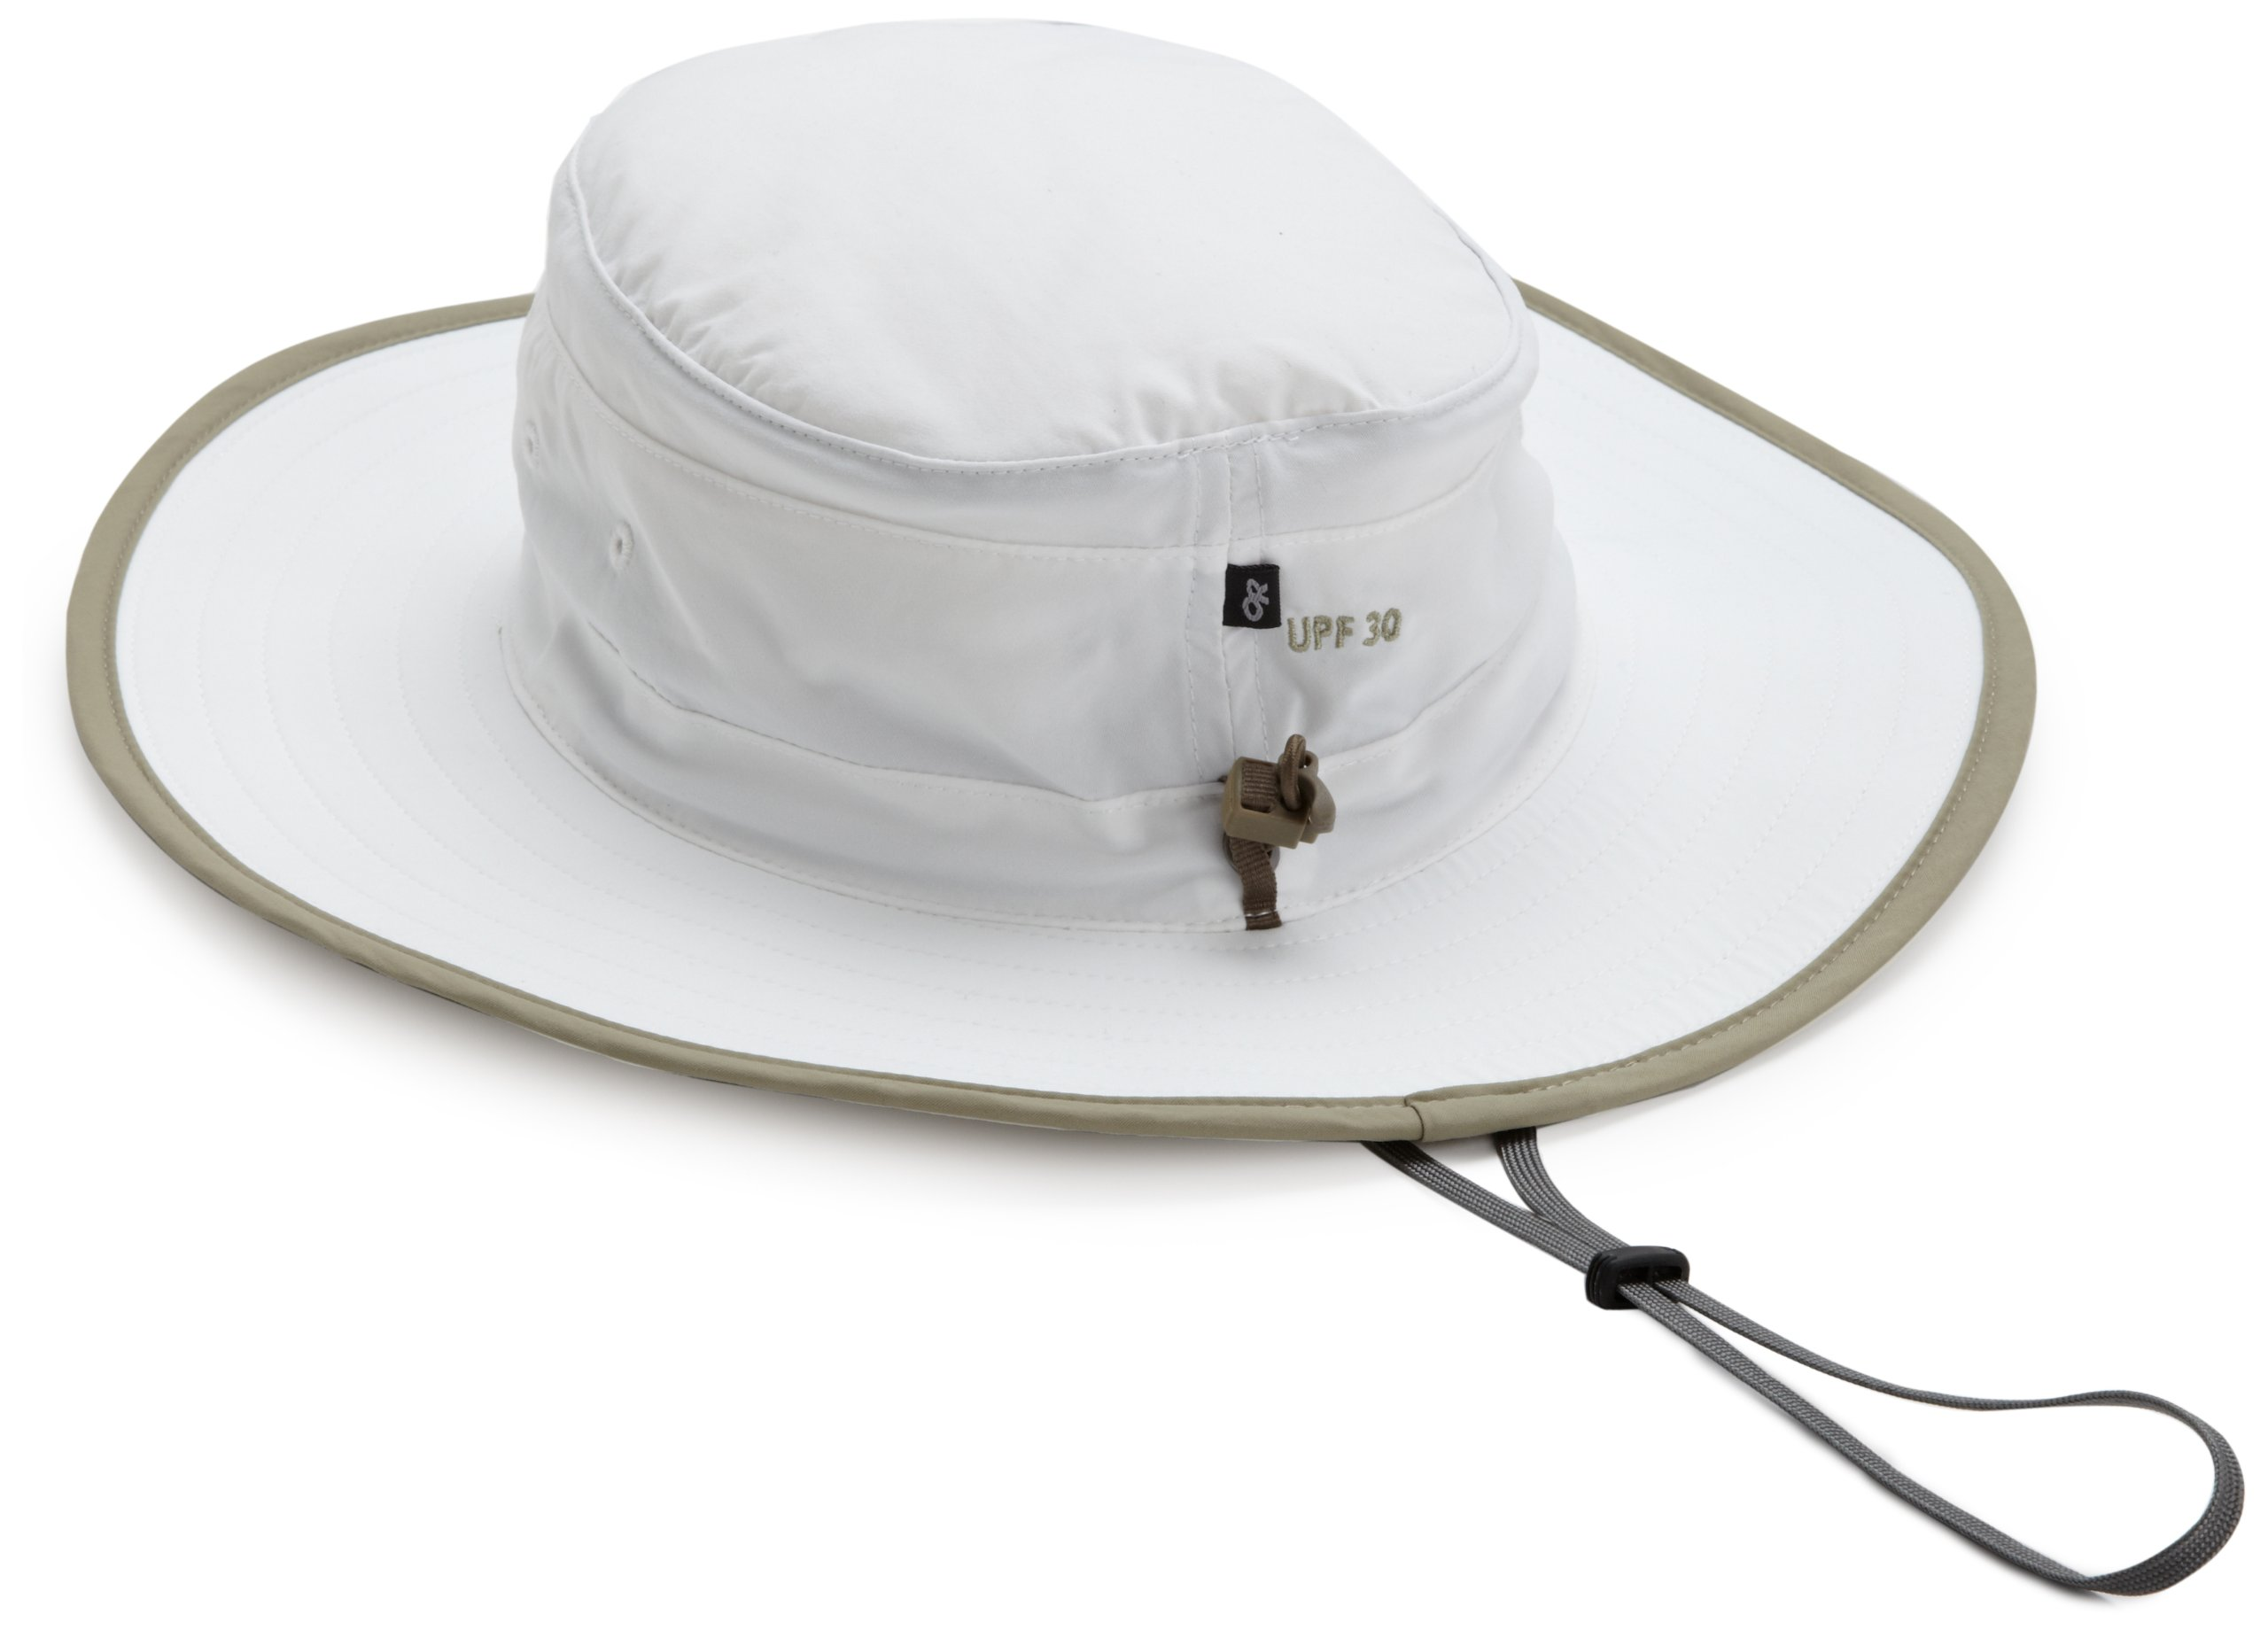 Outdoor Research Women's Solar Roller Sun Hat, White/Khaki, Medium by Outdoor Research (Image #2)